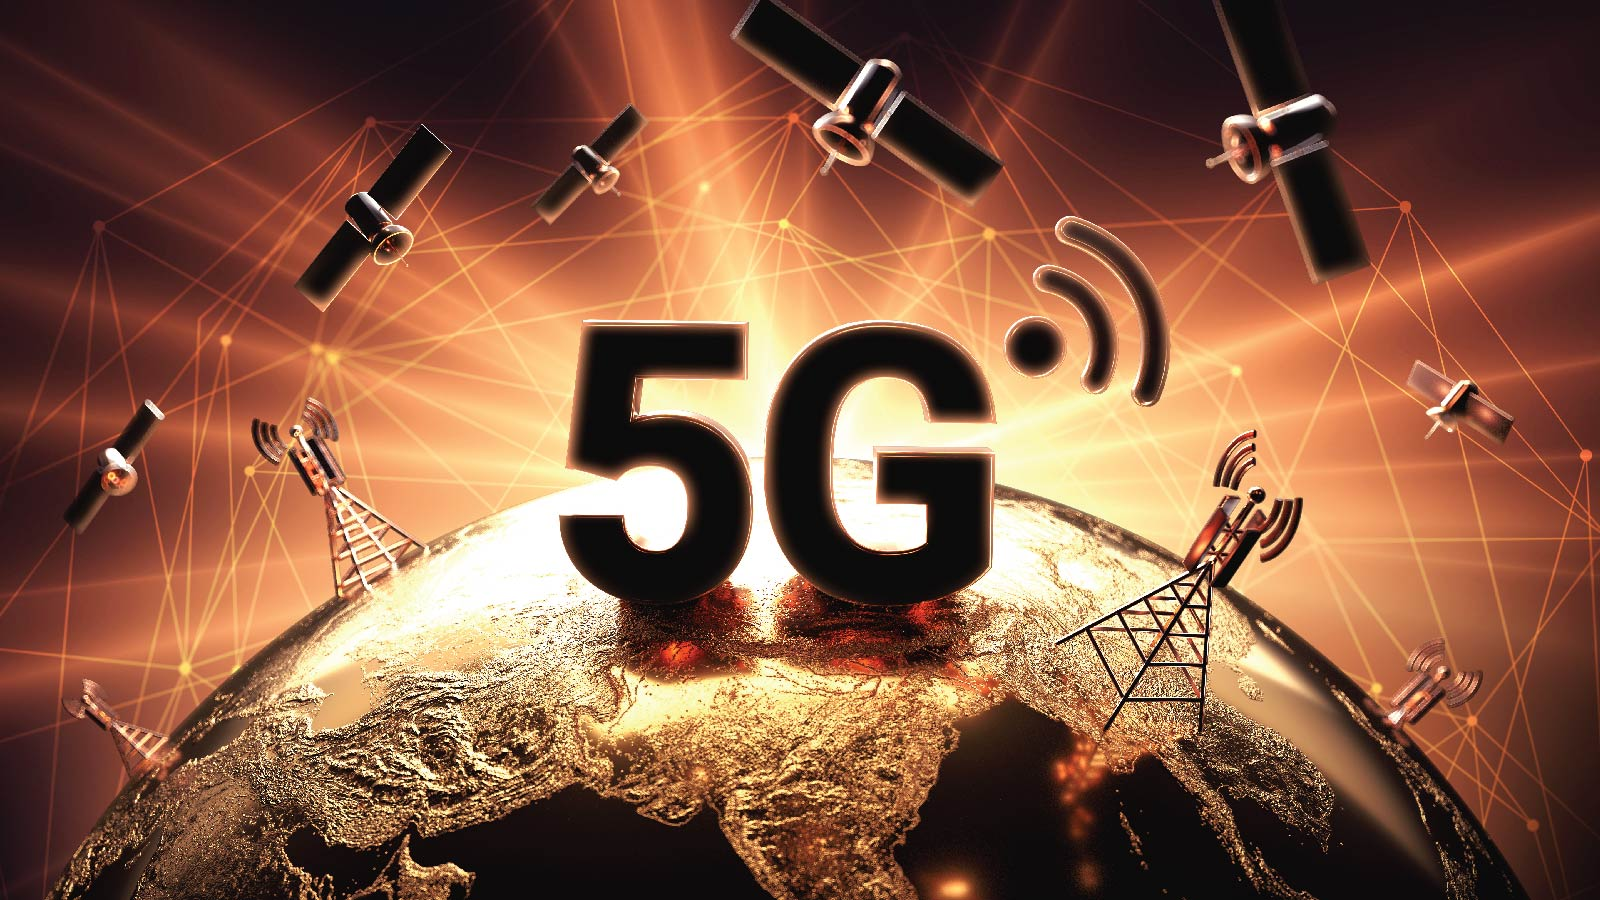 IoT and Edge Computing Will Increase with 5G Adoption